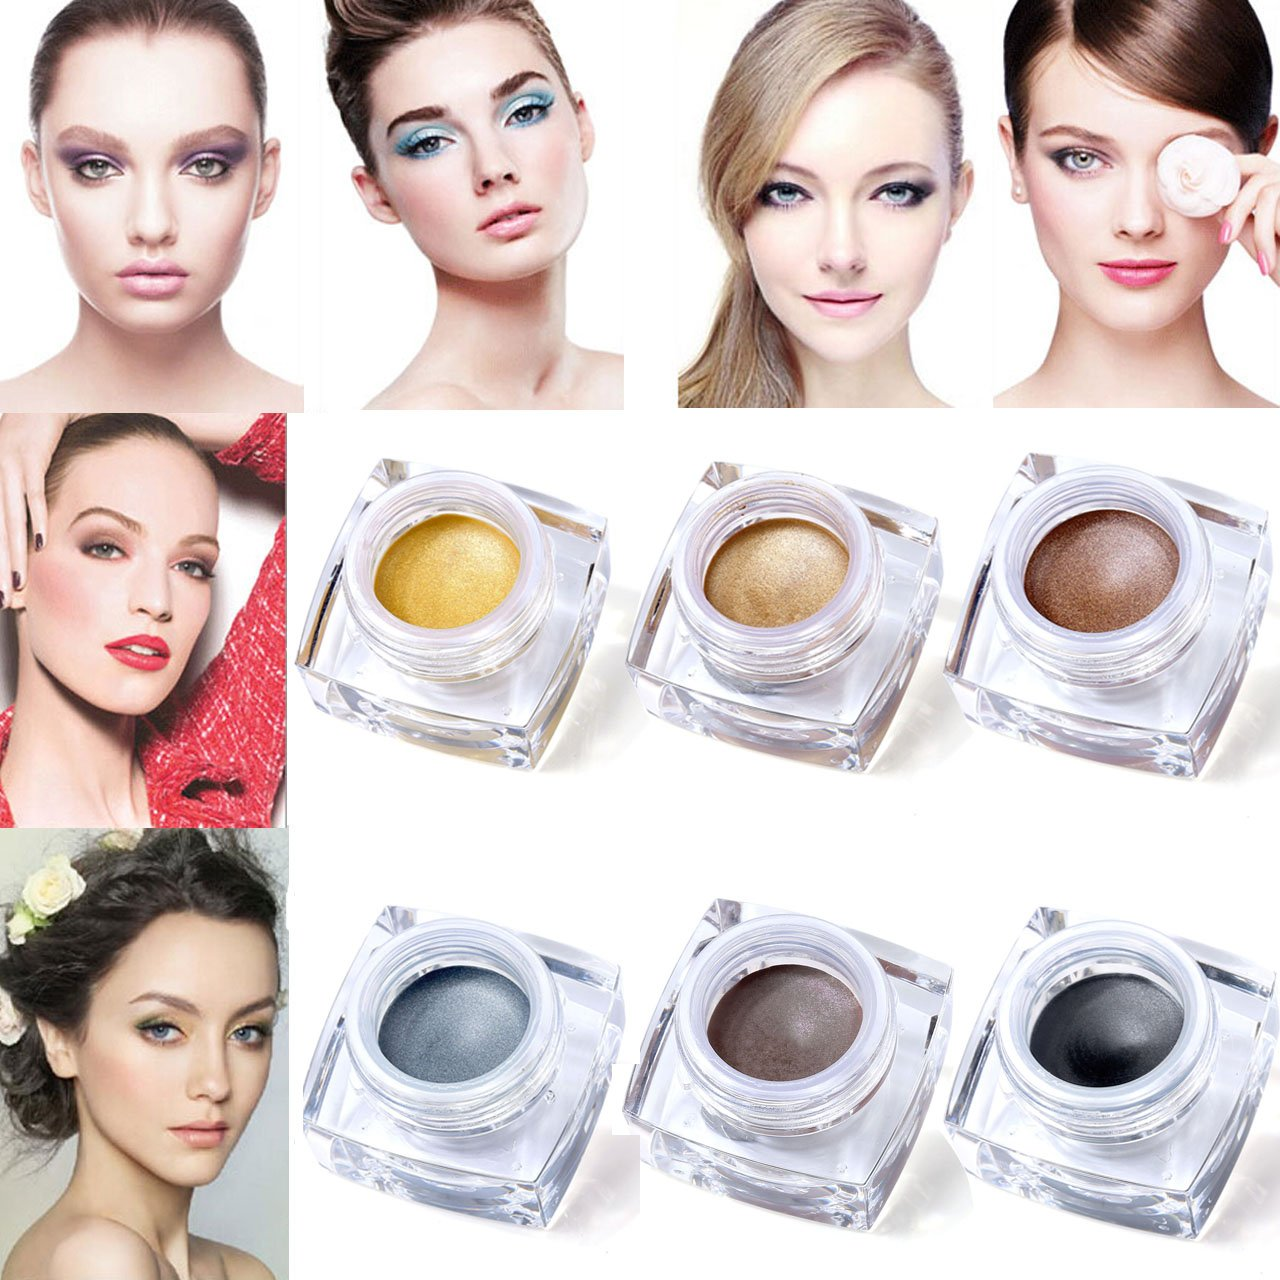 CCbeauty 6 Colors Waterproof Shimmer Makeup Glitter Cream Eyeshadow Palette Set, Long Lasting Mulfunctional Make up Set #2